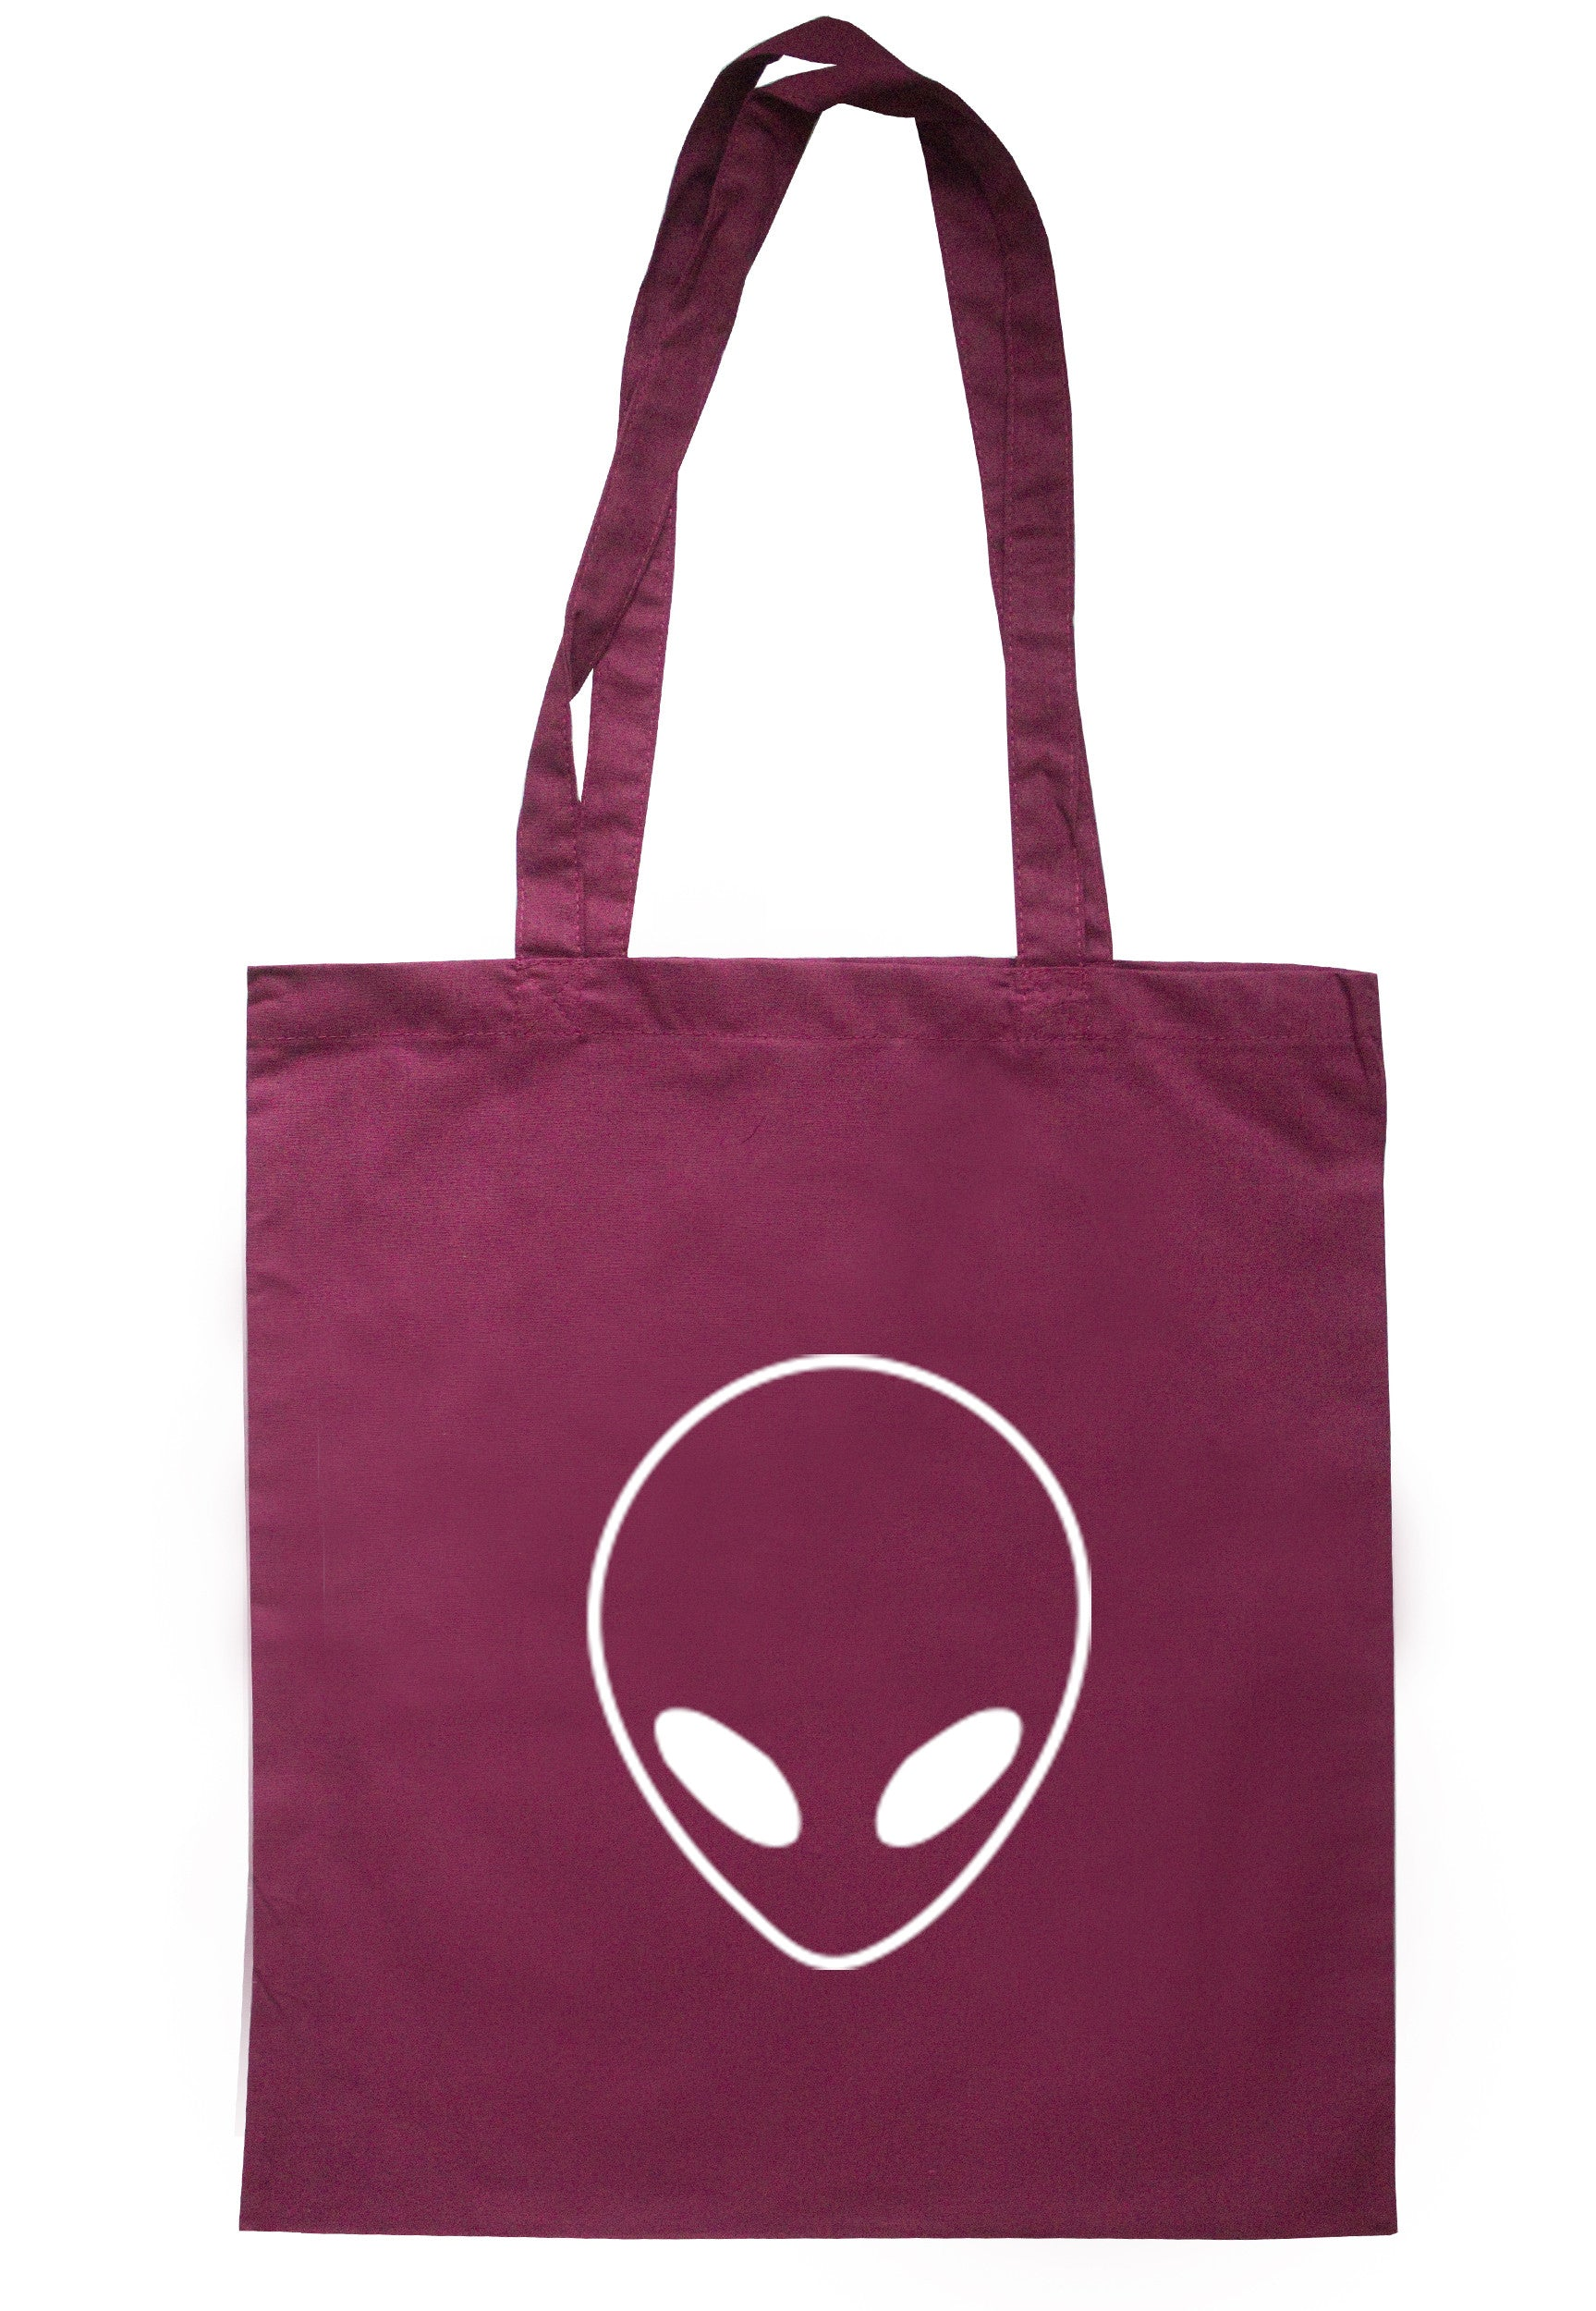 Alien Design Tote Bag TB0335 - Illustrated Identity Ltd.